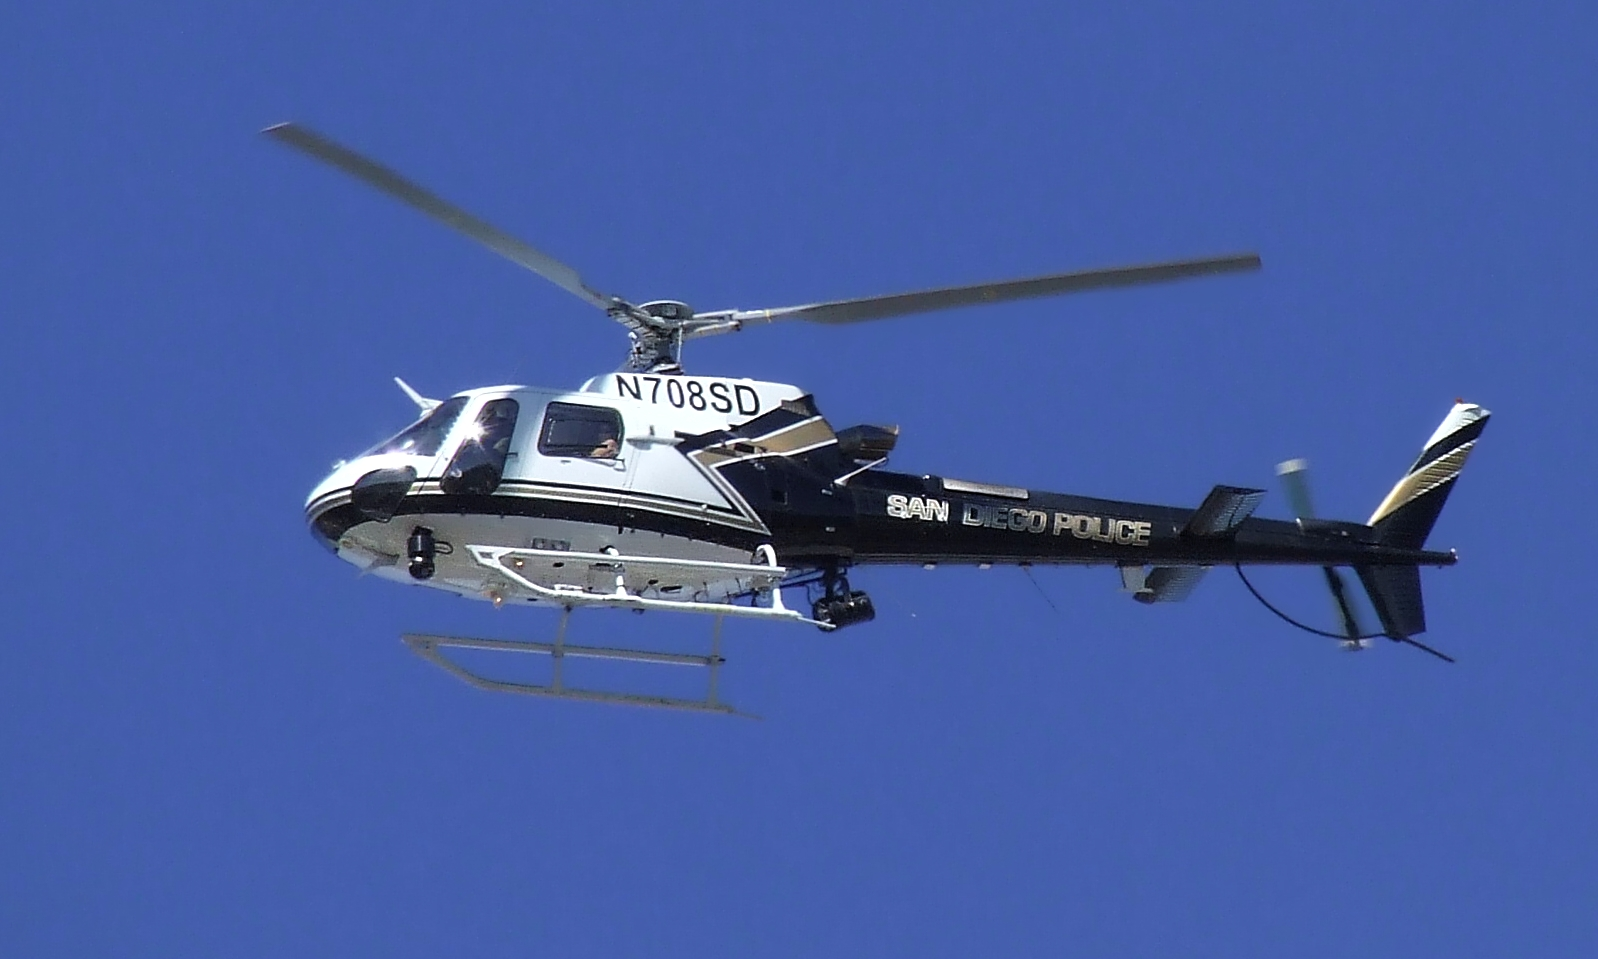 ABLEcopter San Diego Police Helicopter